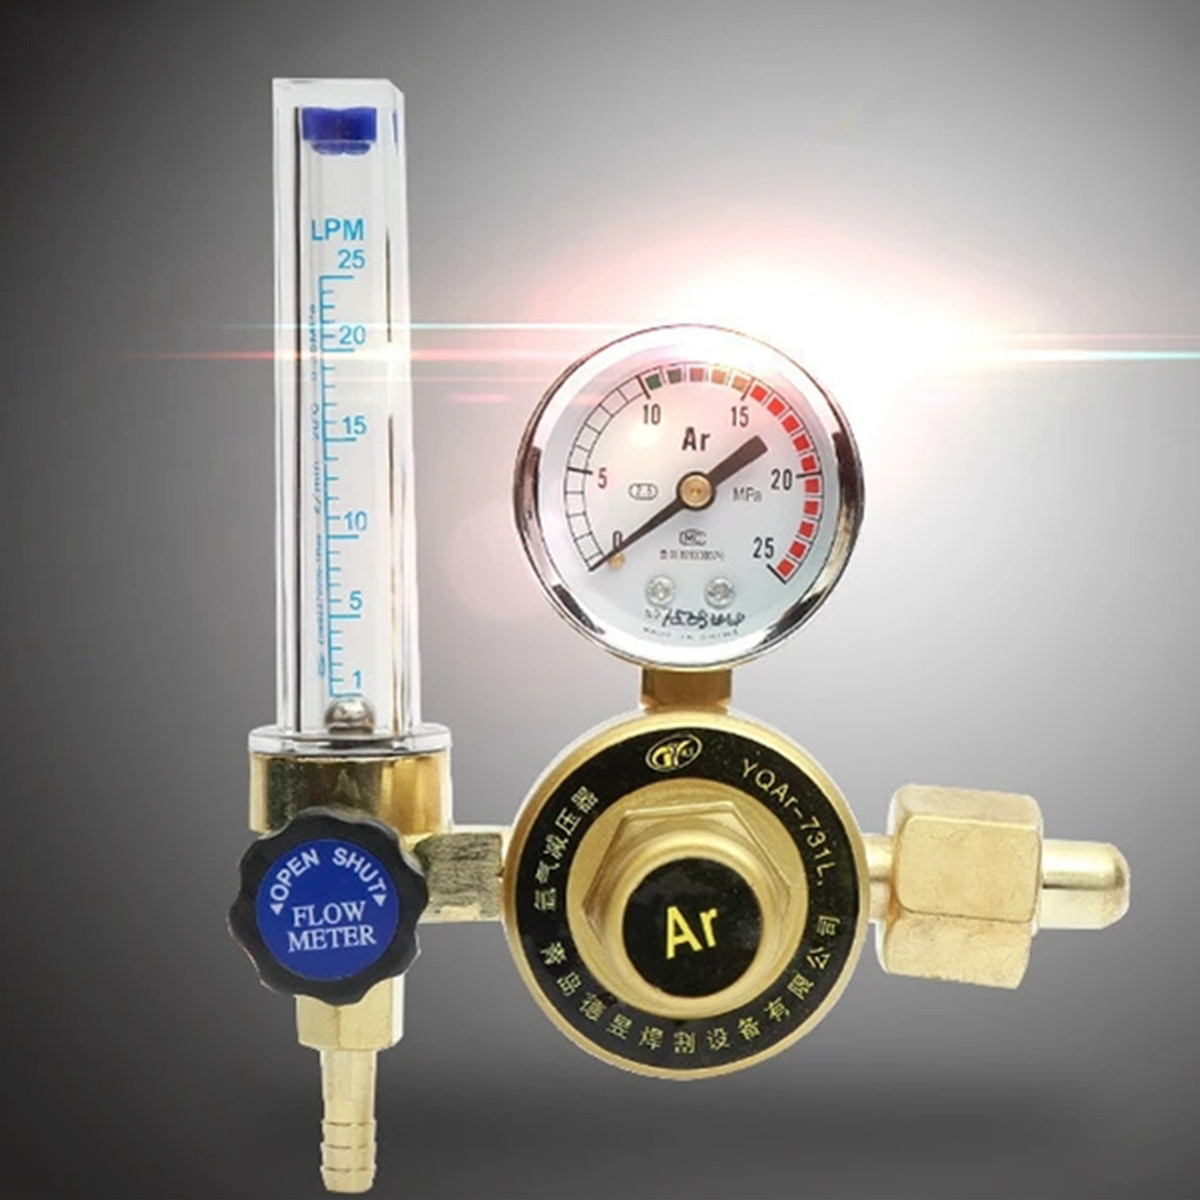 Mig Flow Meter Gas Argon 7mm Barb 1/4PT 0.15 MPA AR/CO2 Regulator Welding Weld Transparent Gold 16.5 x 5.5cm for Ar Gas high quality 1 4pt thread 7mm barb argon gas flow meter welding weld regulator 0 15 mpa